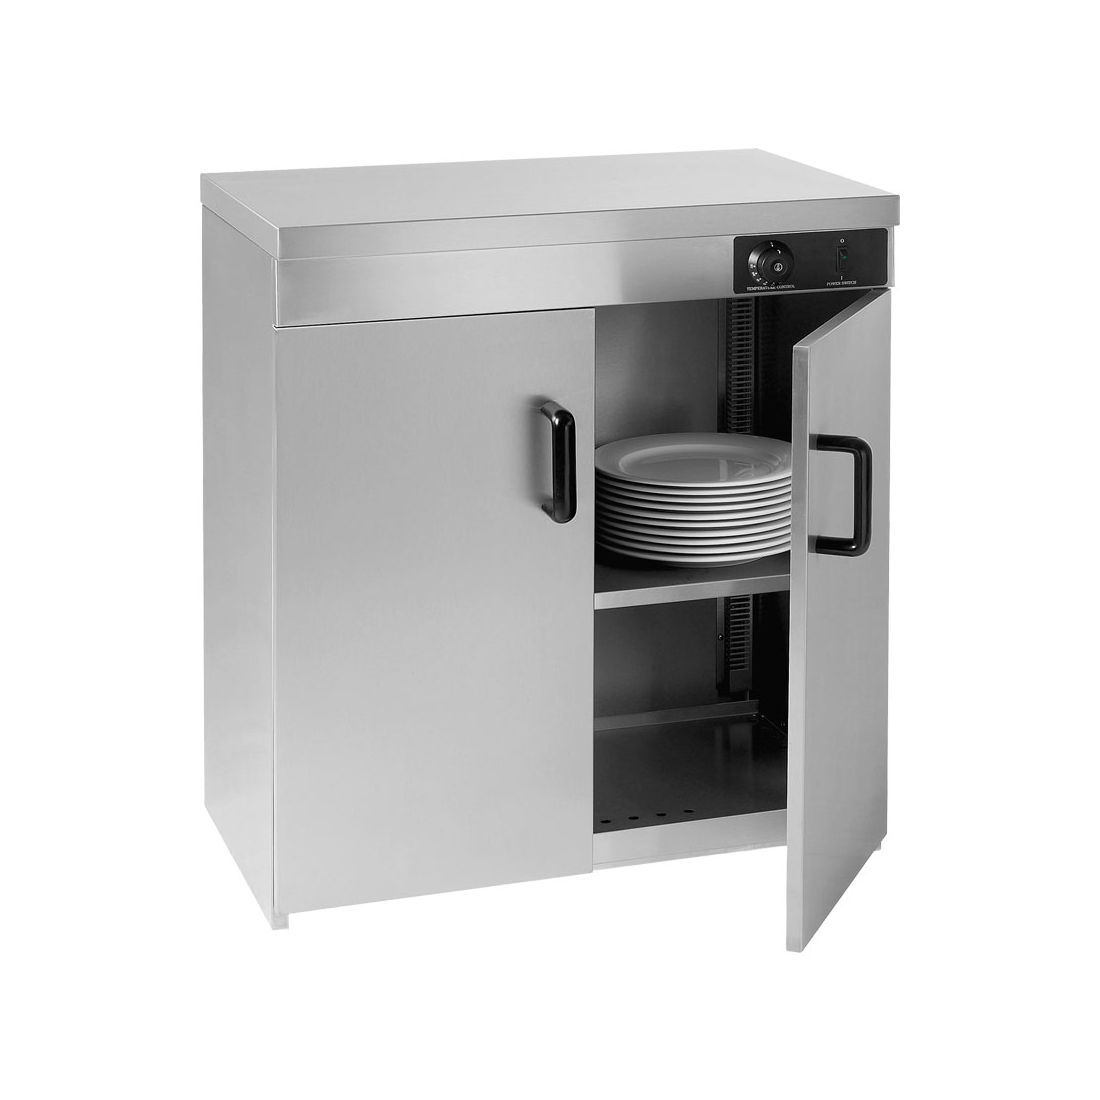 PW-D Plate Warmer - Double